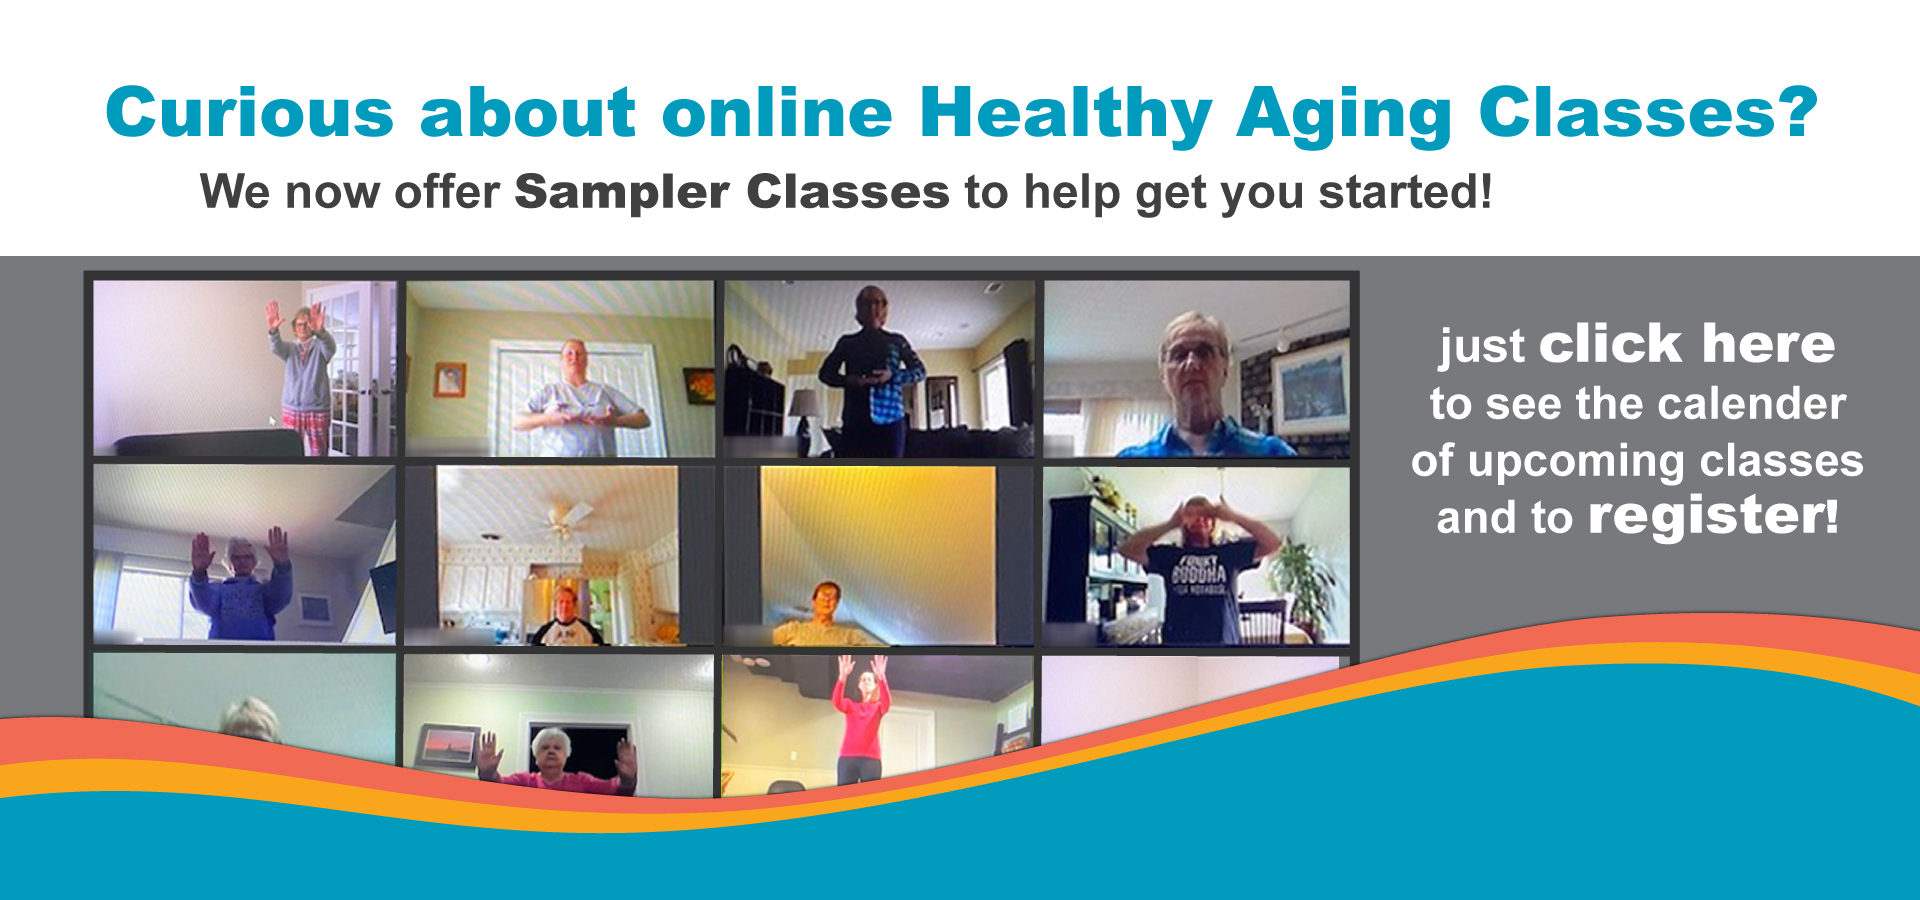 Click to see calendar of Healthy Aging Sampler Classes